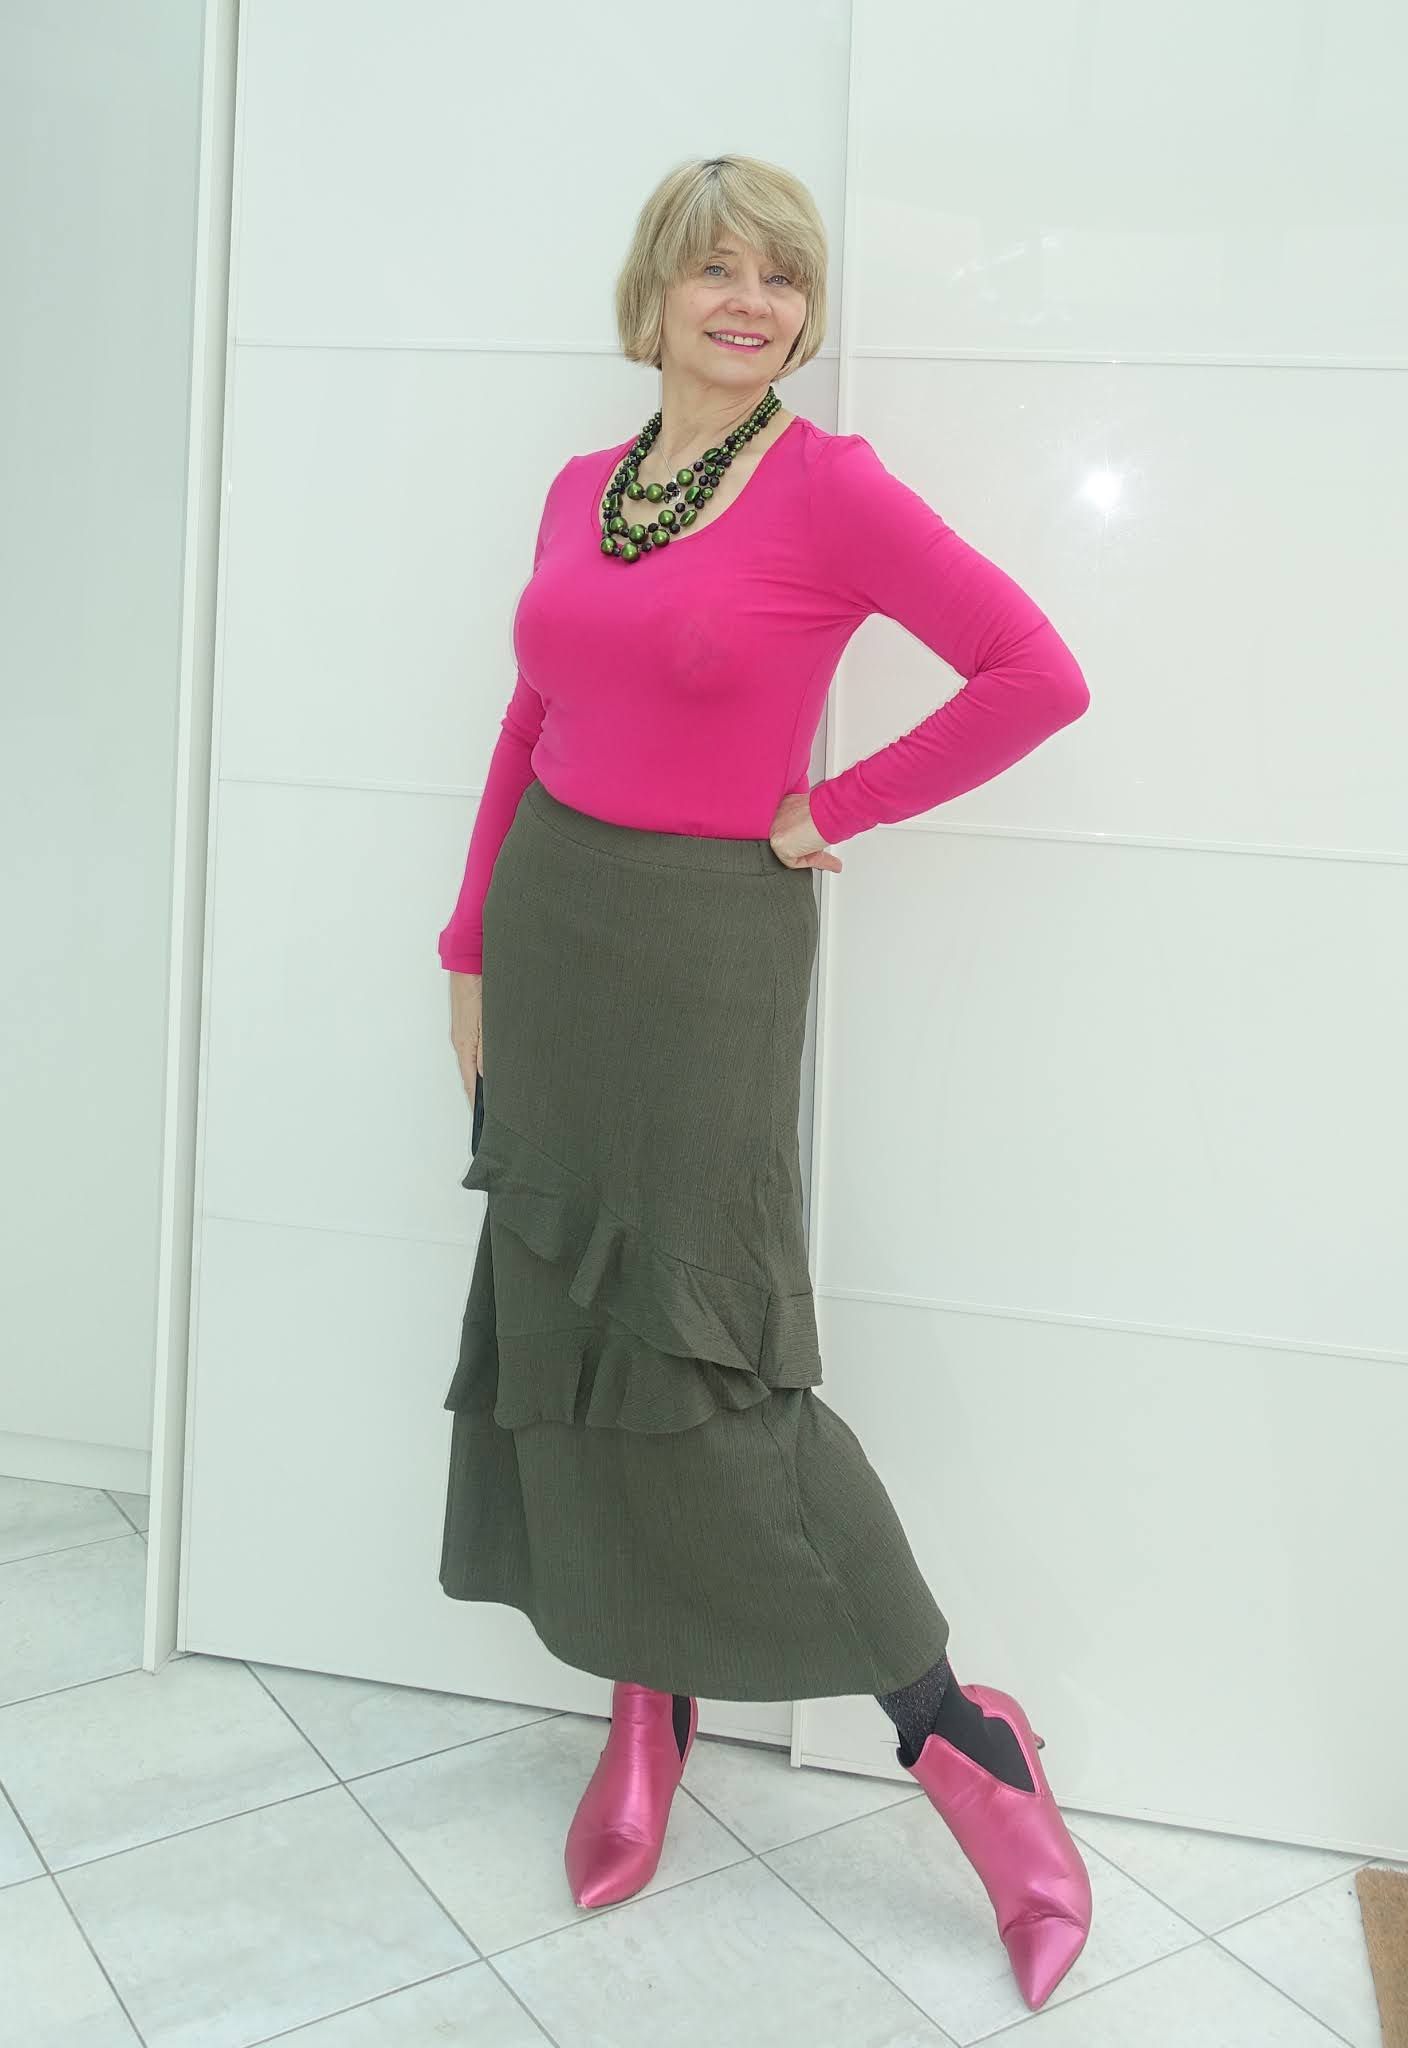 A Covid forgiving waistline and tiers make this khaki skirt a winner for all ages and fuchsia pink means anyone wearing it over 50 will be far from invisible